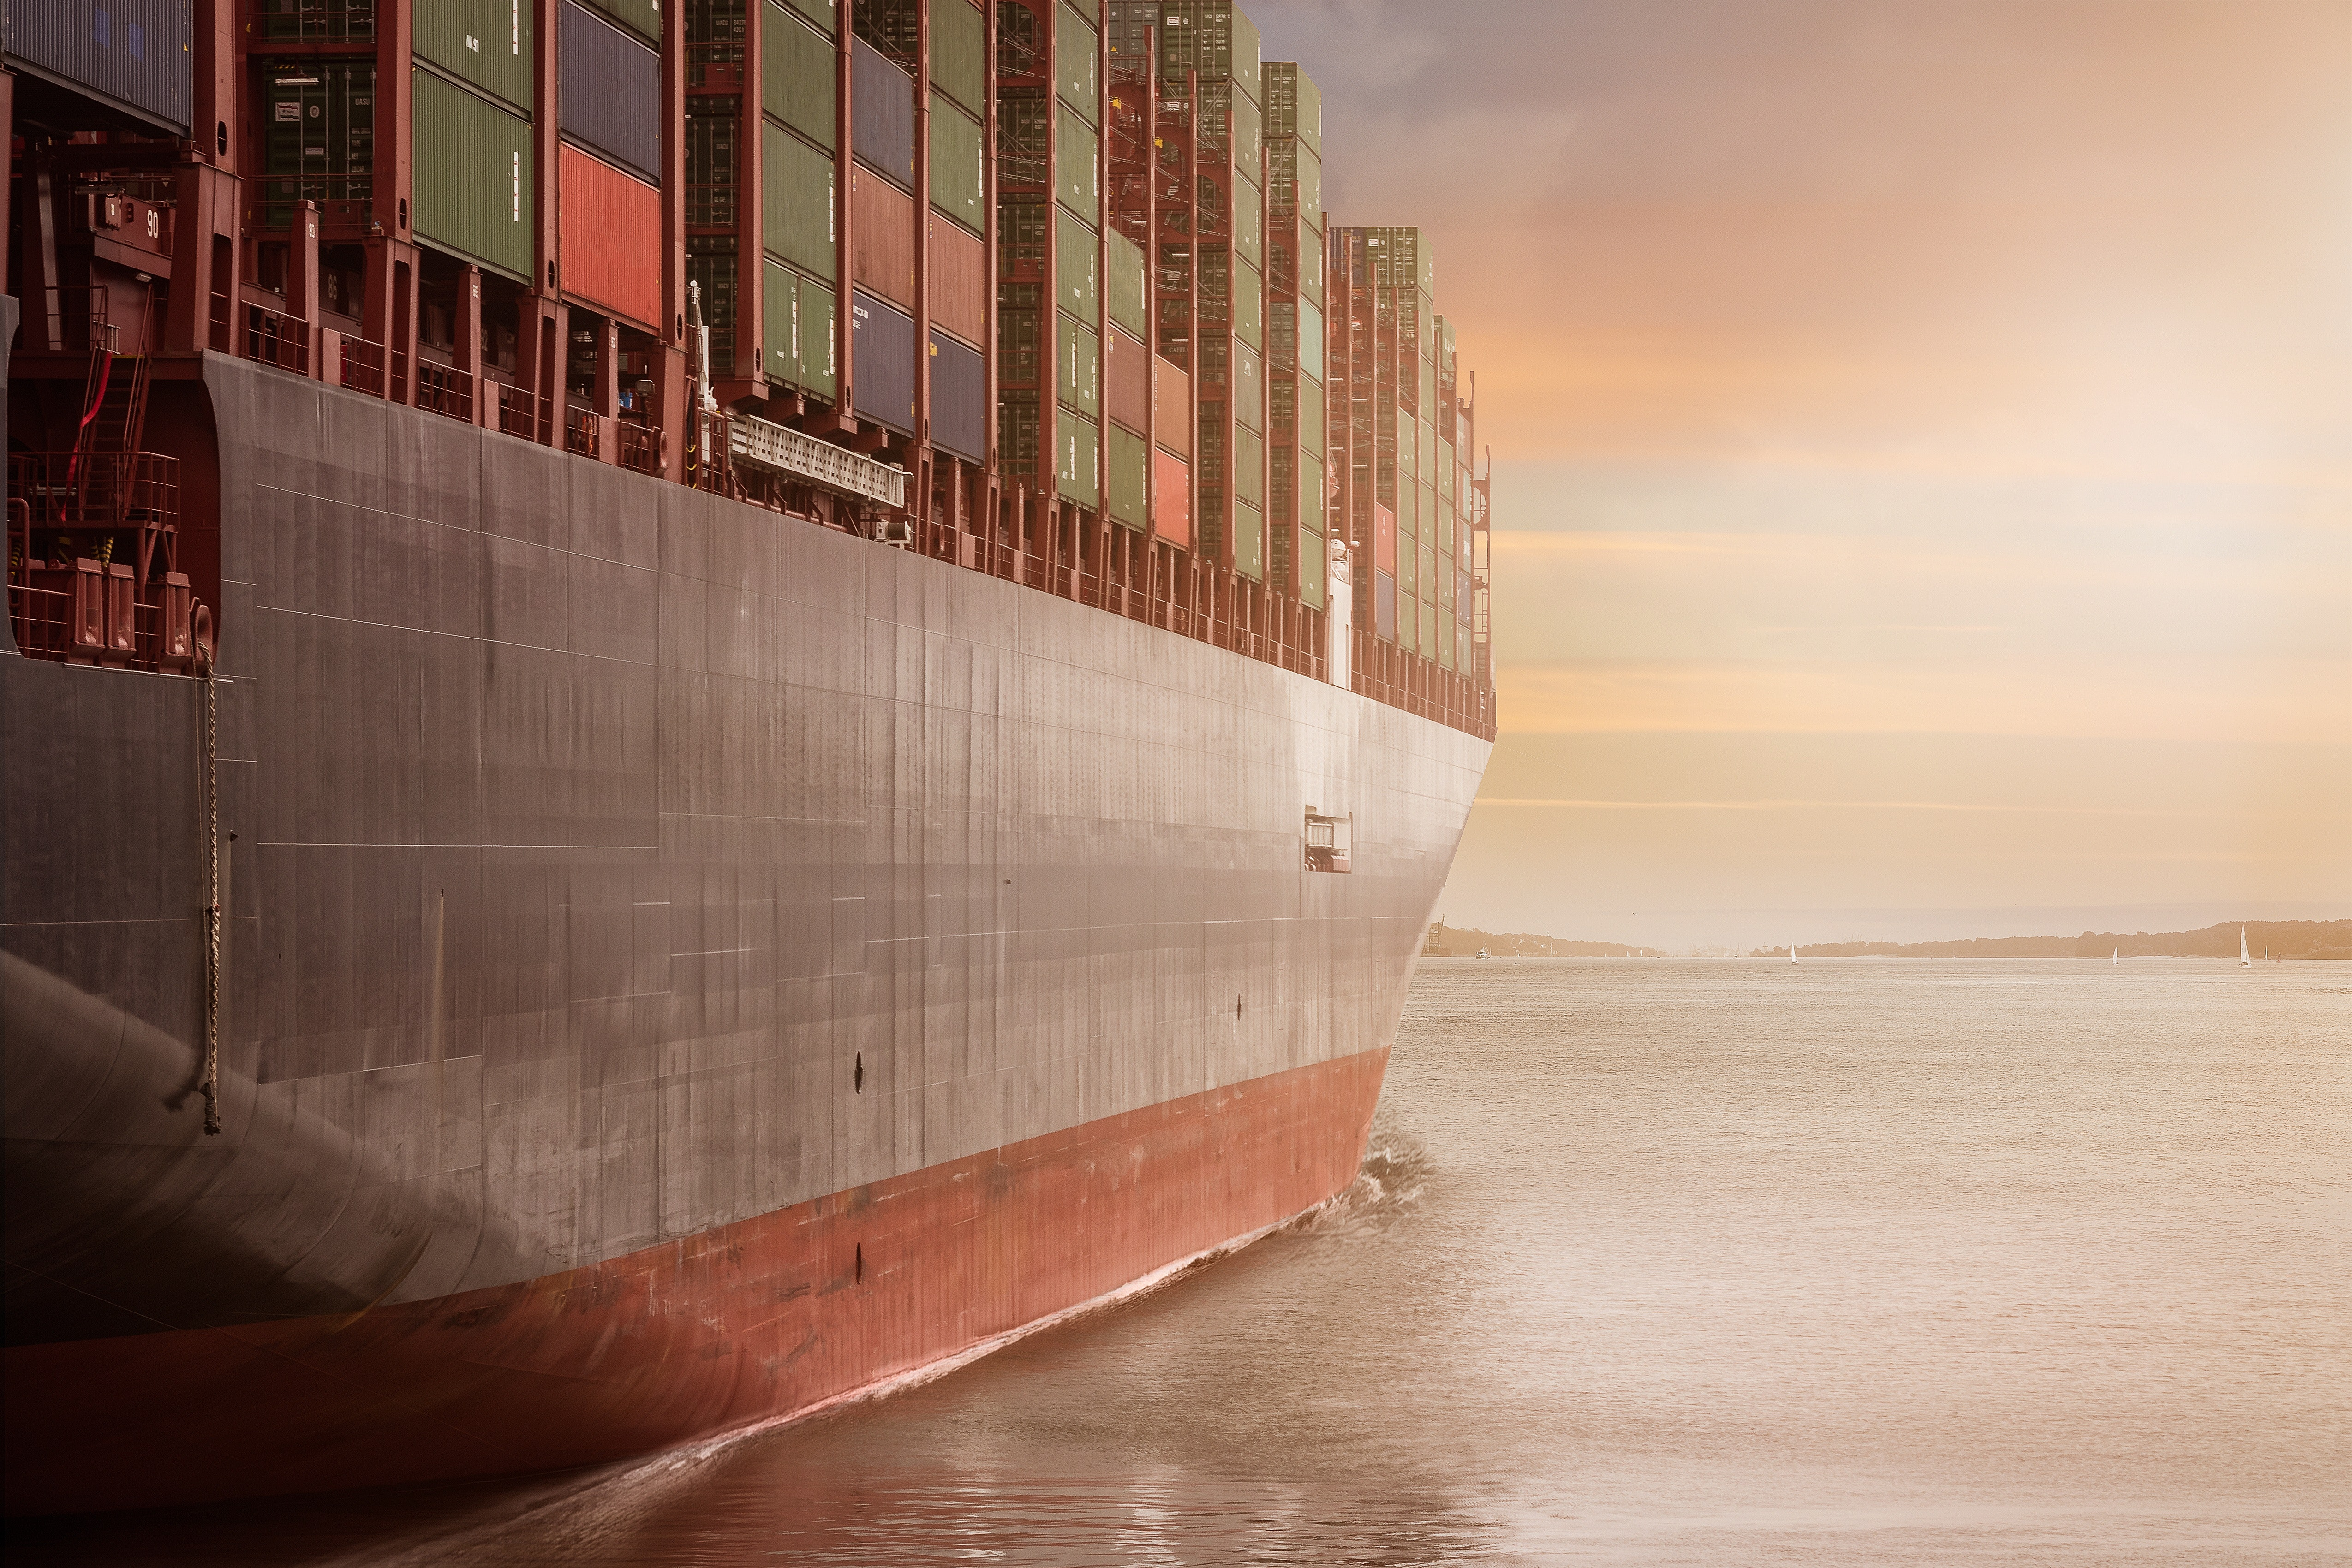 Malta's role in ship recycling and its impact on environmental protection